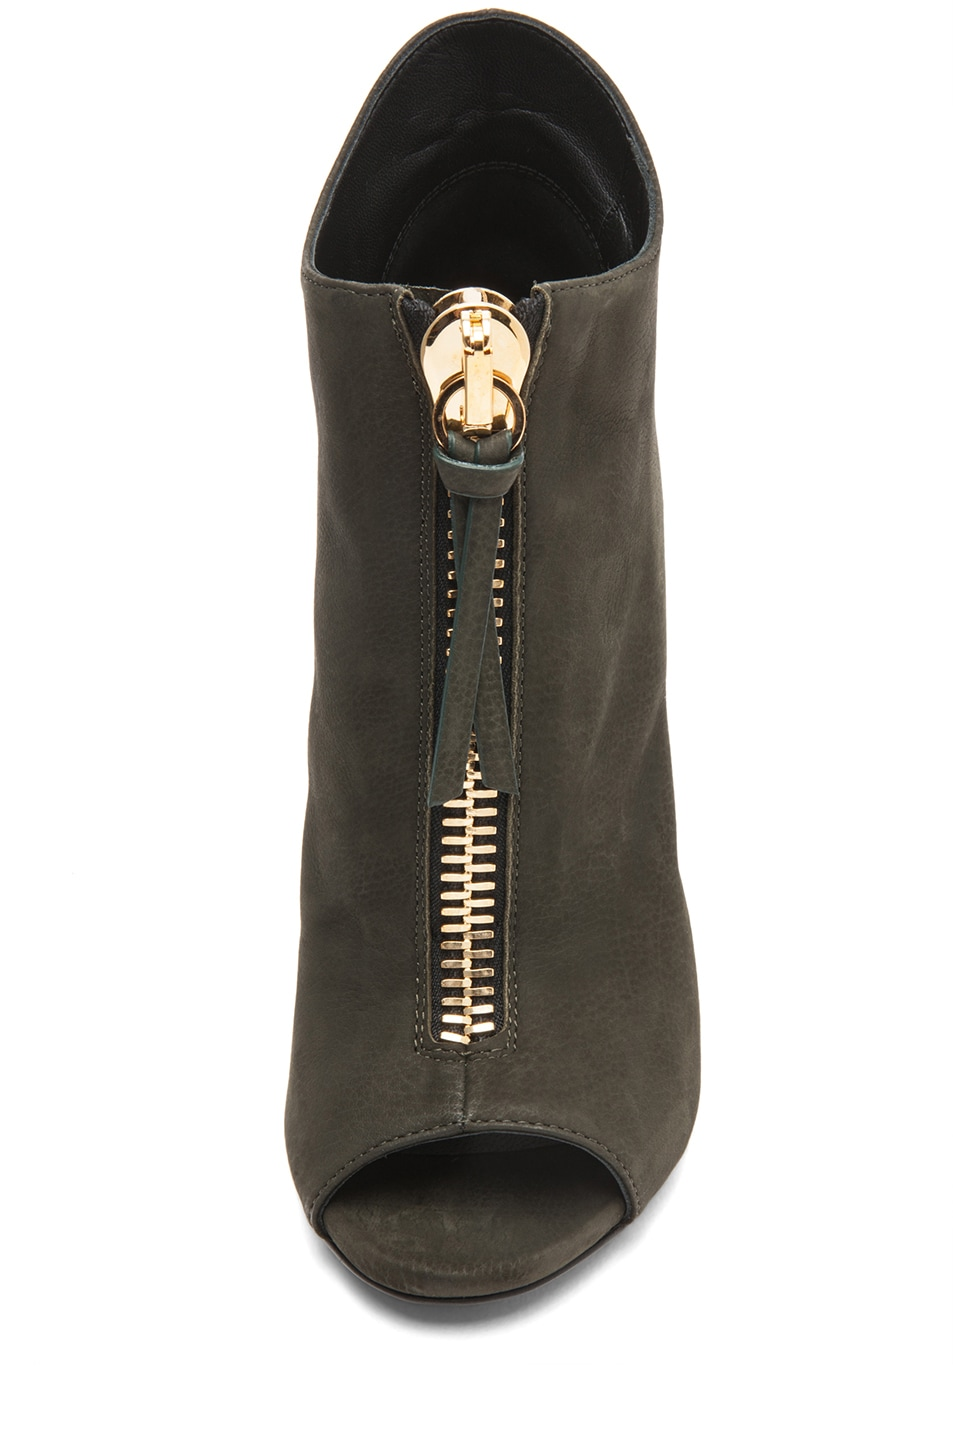 Image 4 of Giuseppe Zanotti Suede Zip Up Ankle Boot in Olive